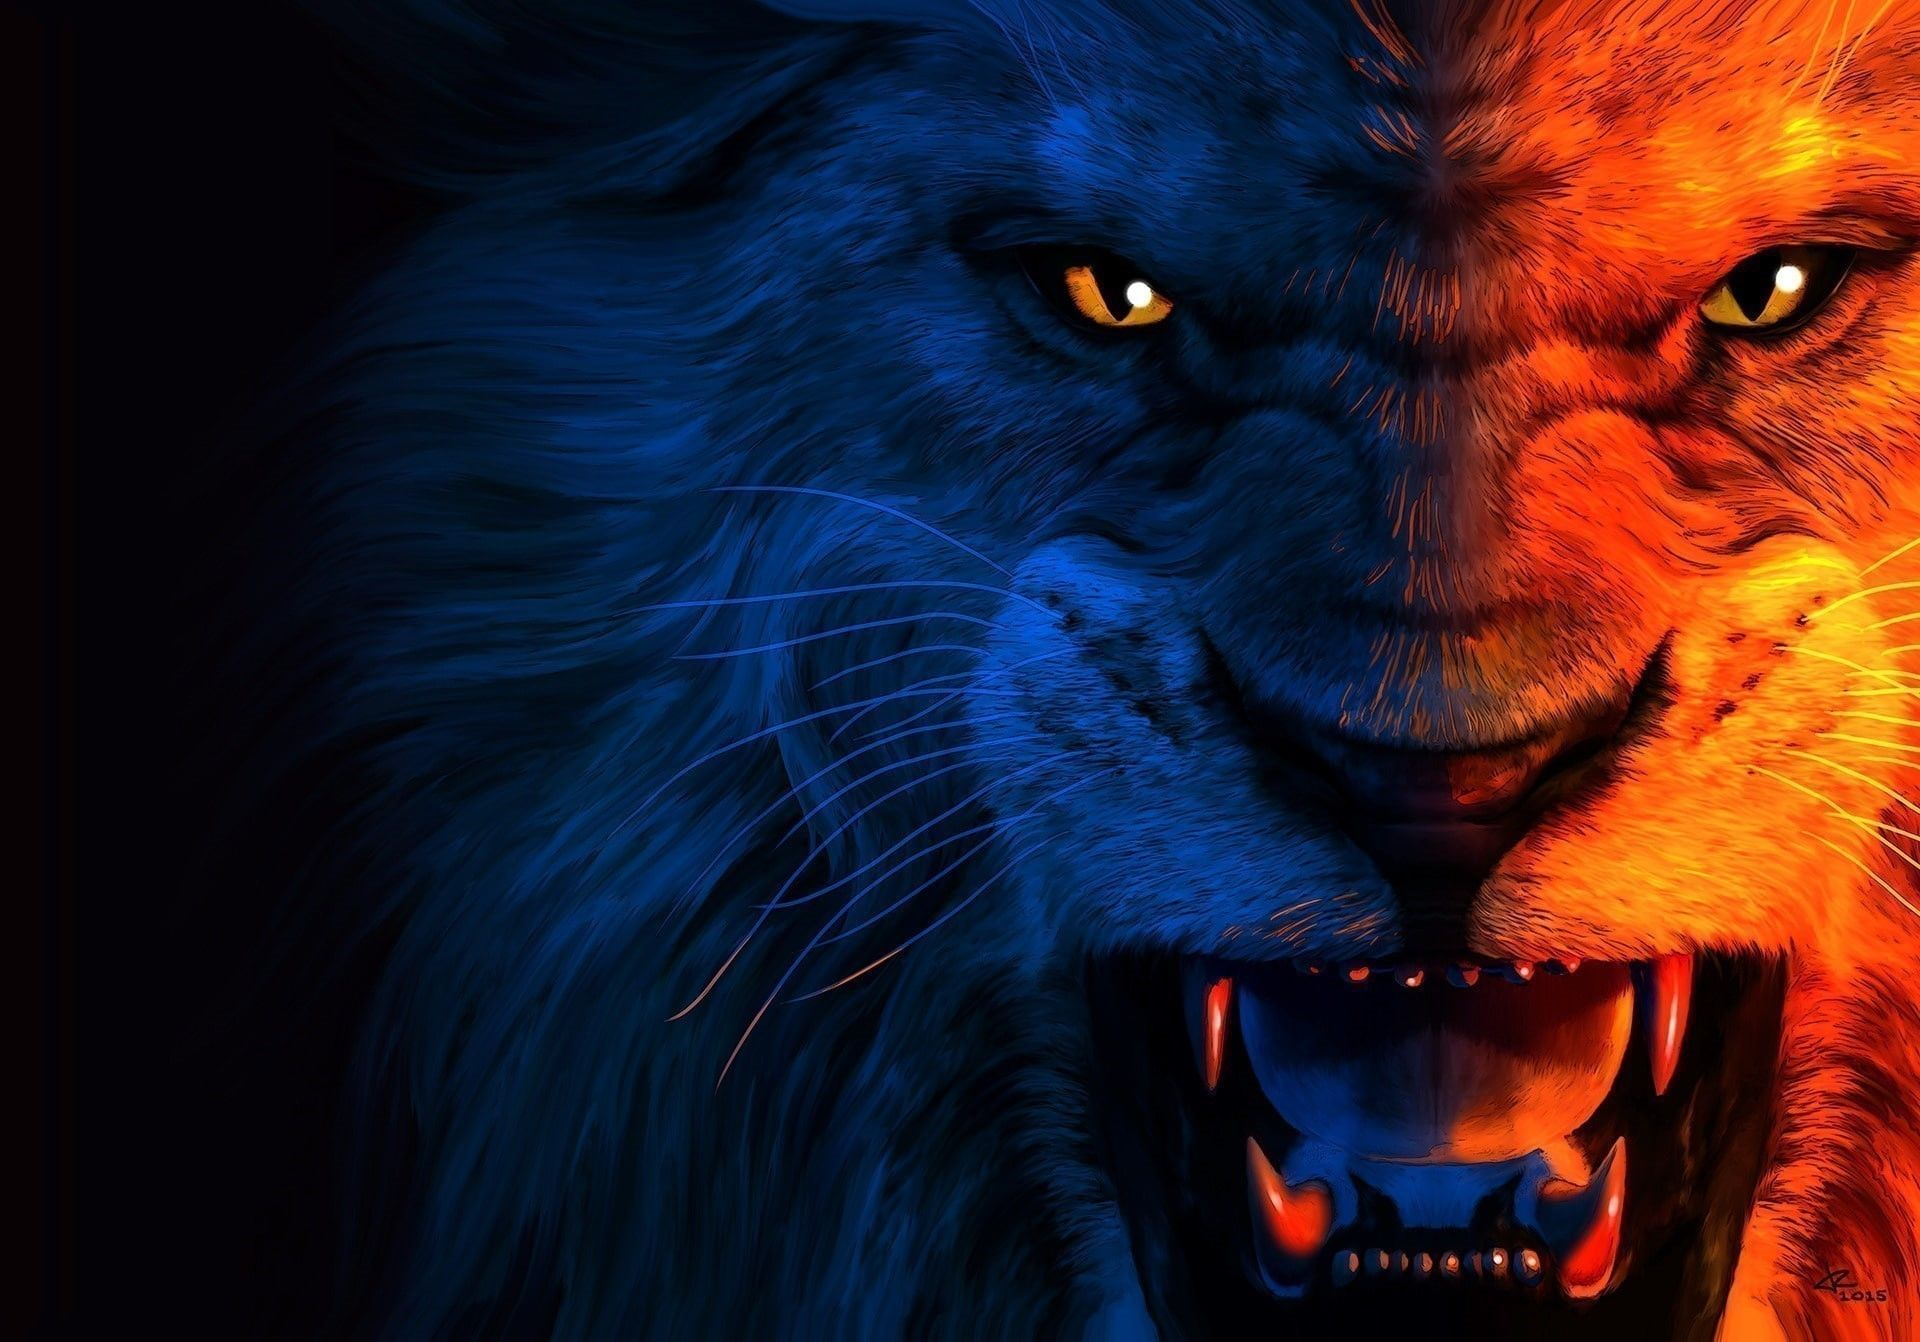 Angry Lion Laptop Wallpapers - Top Free Angry Lion Laptop ...